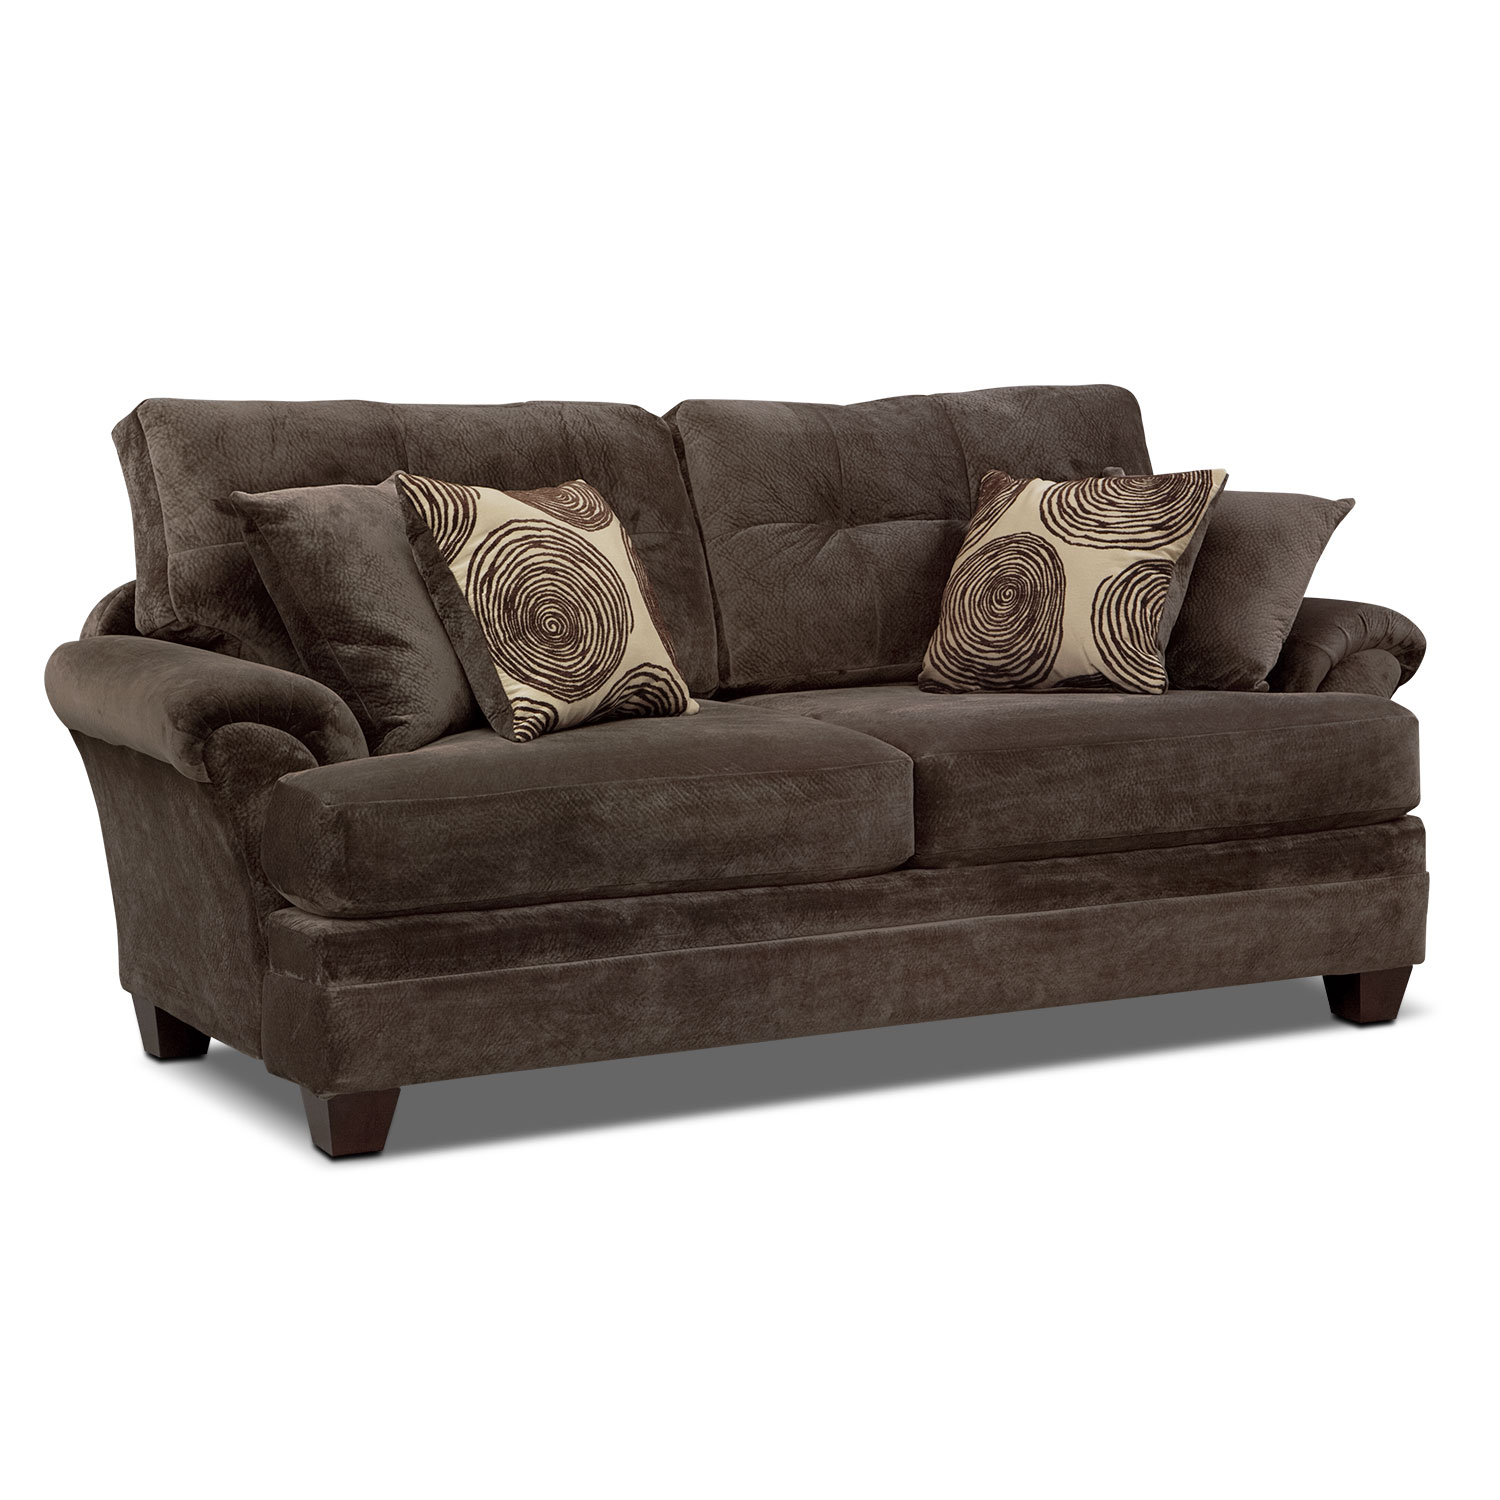 Living Room Furniture - Cordelle Sofa